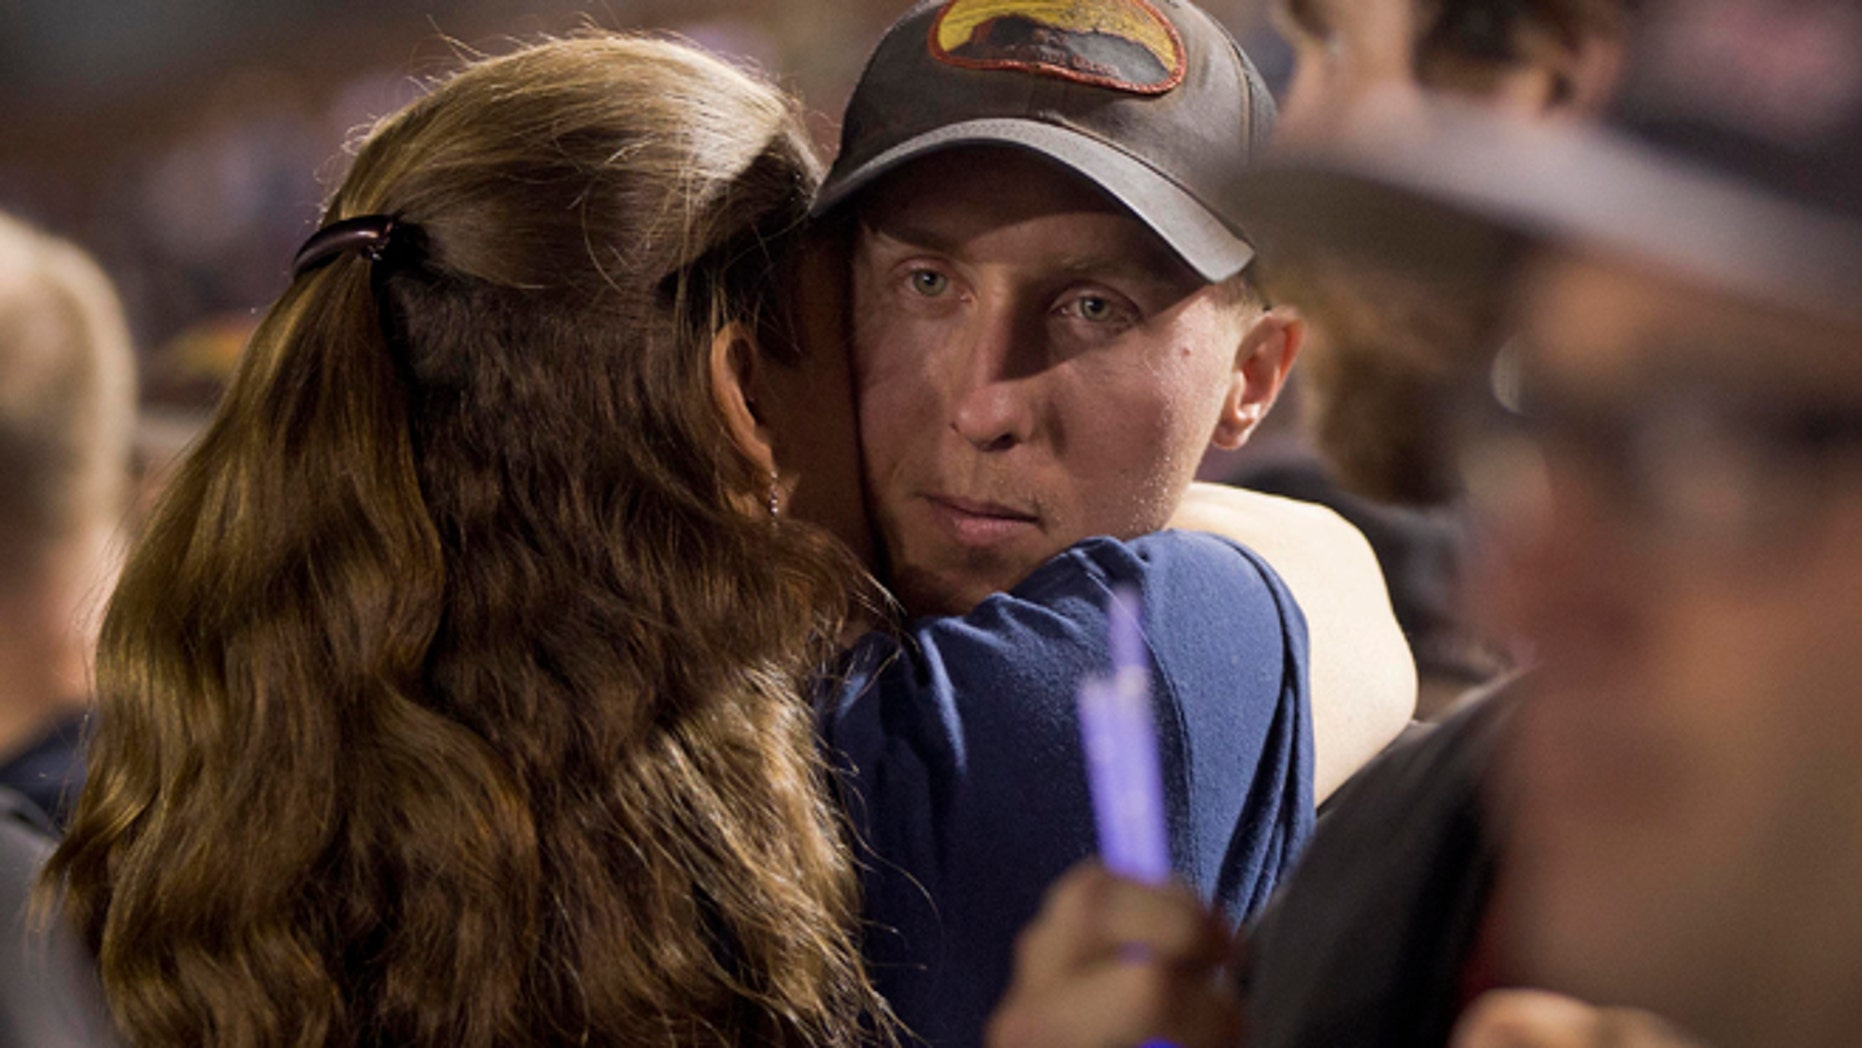 July 2: Firefighter Brendan McDonough embraces a mourner near the end of a candlelight vigil in Prescott, Ariz.